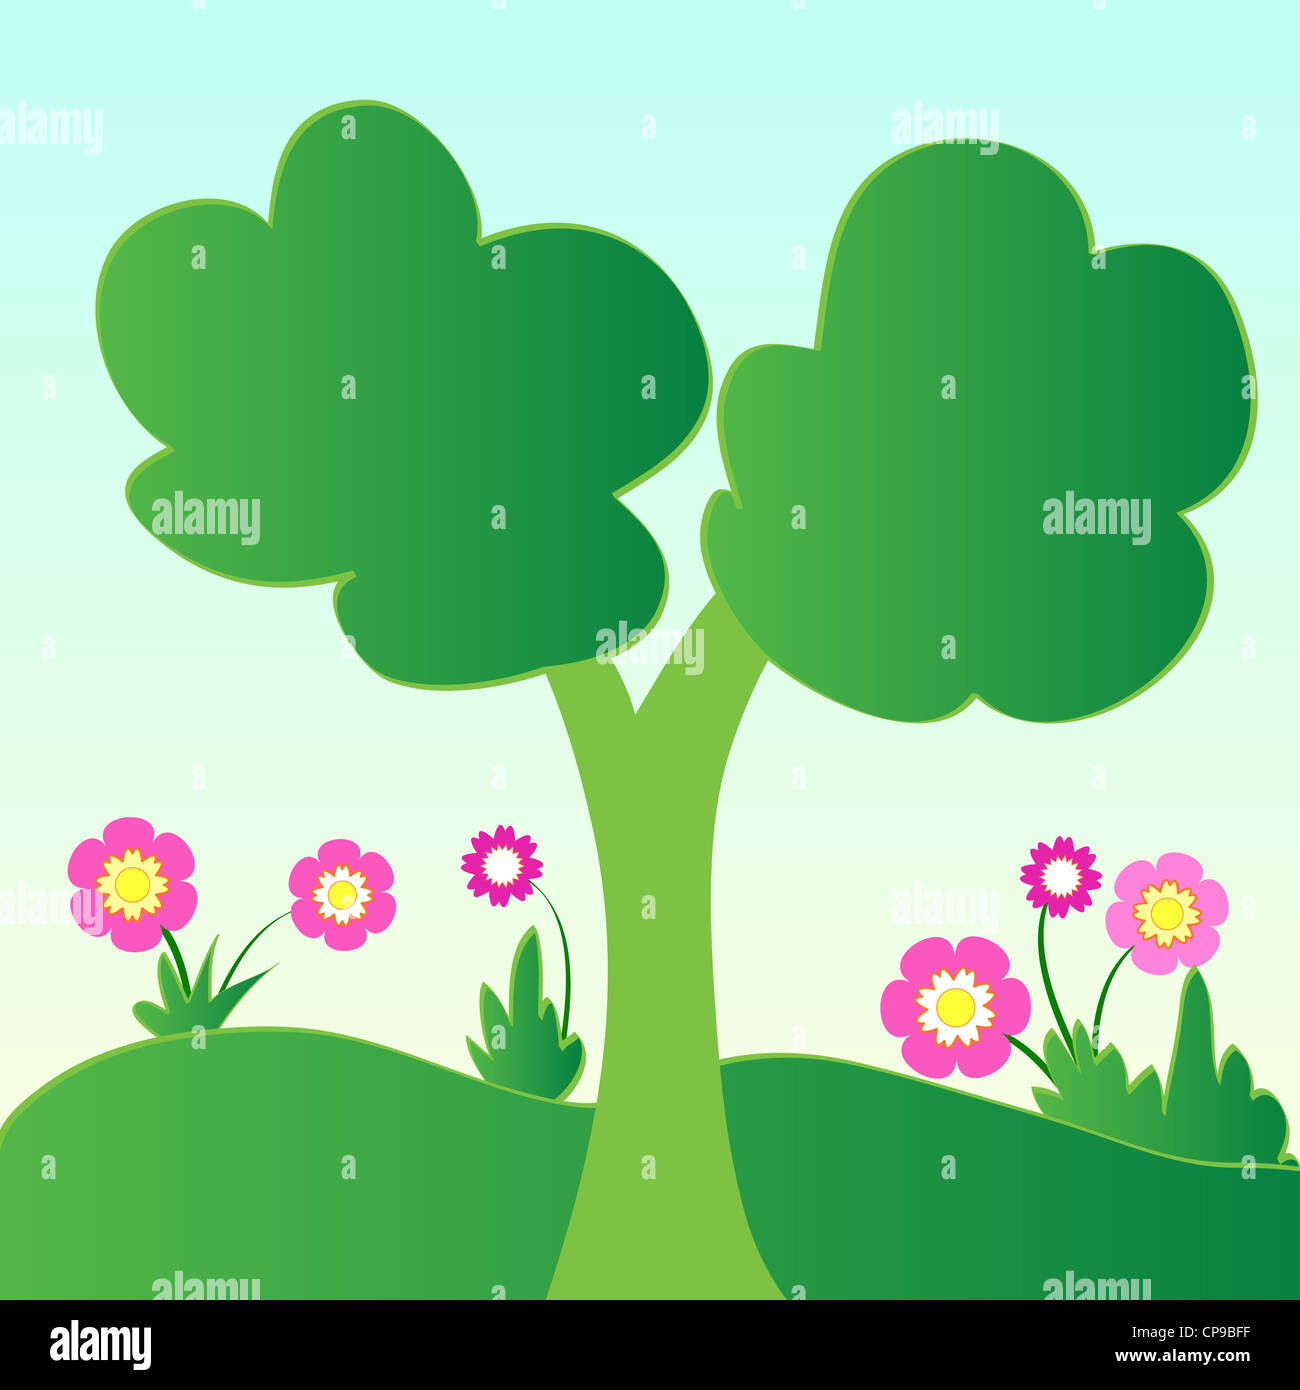 Green tree and flowering plants illustration Stock Photo